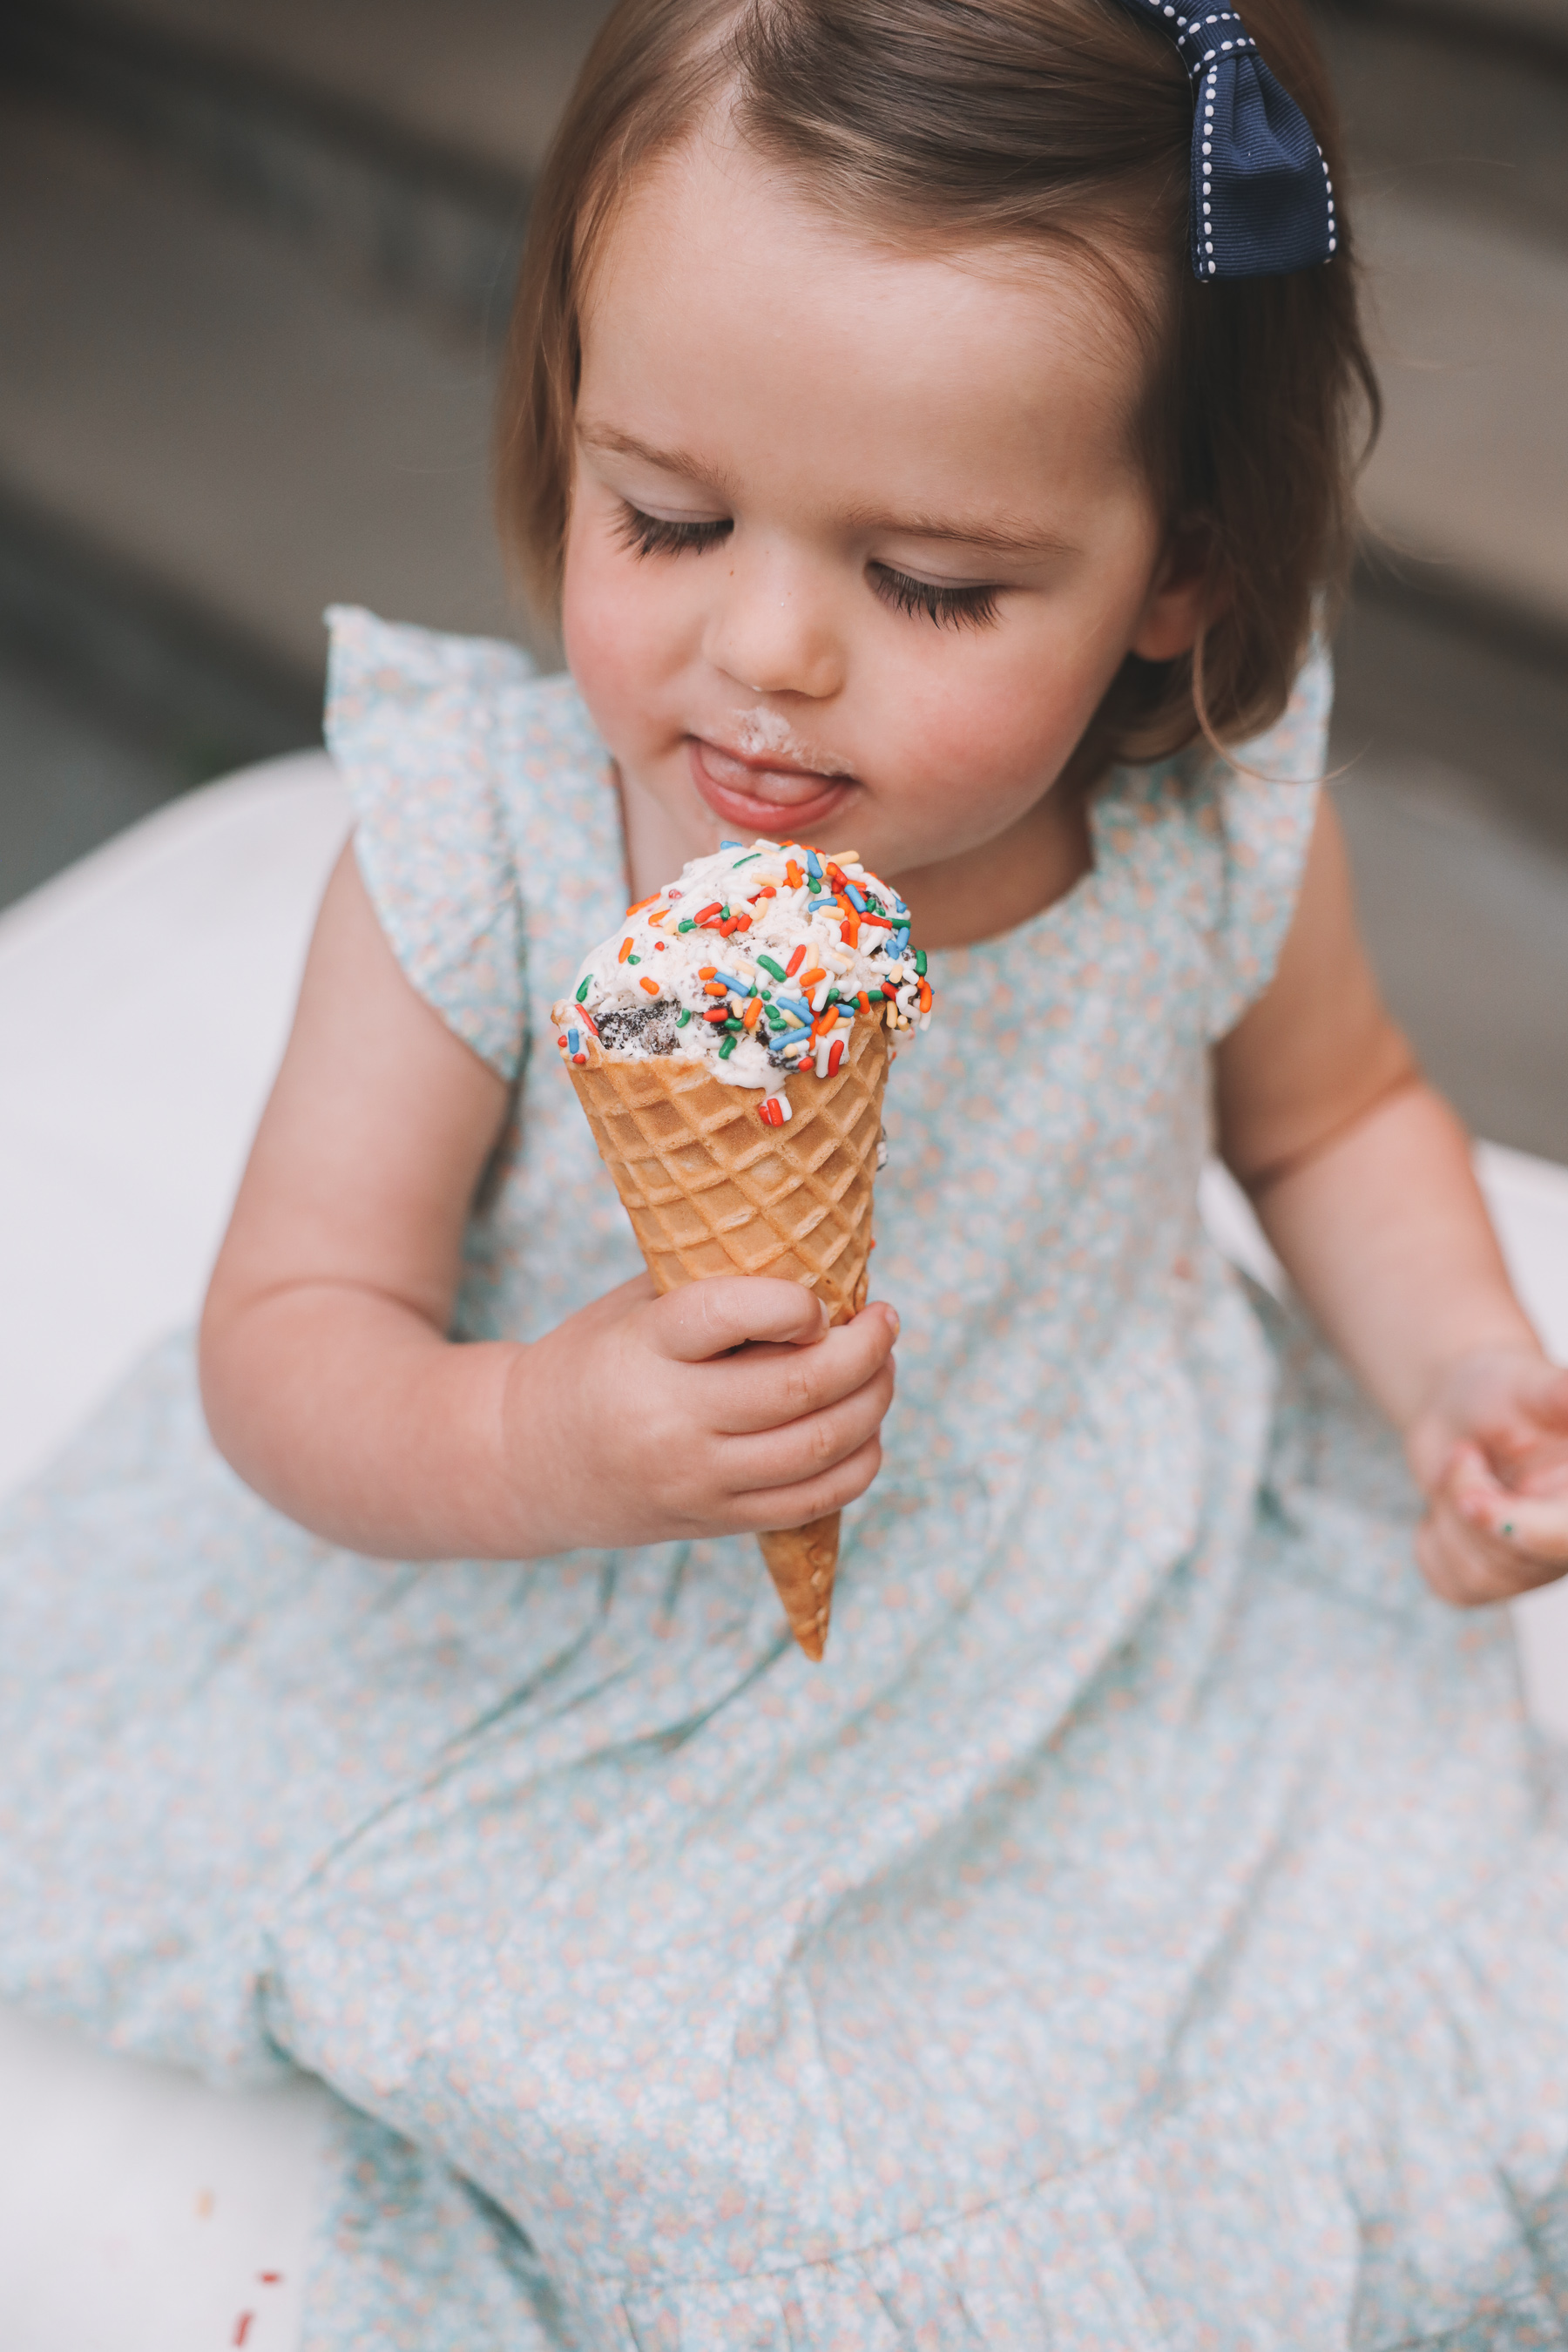 Favorite Day Ice Cream with sprinkles